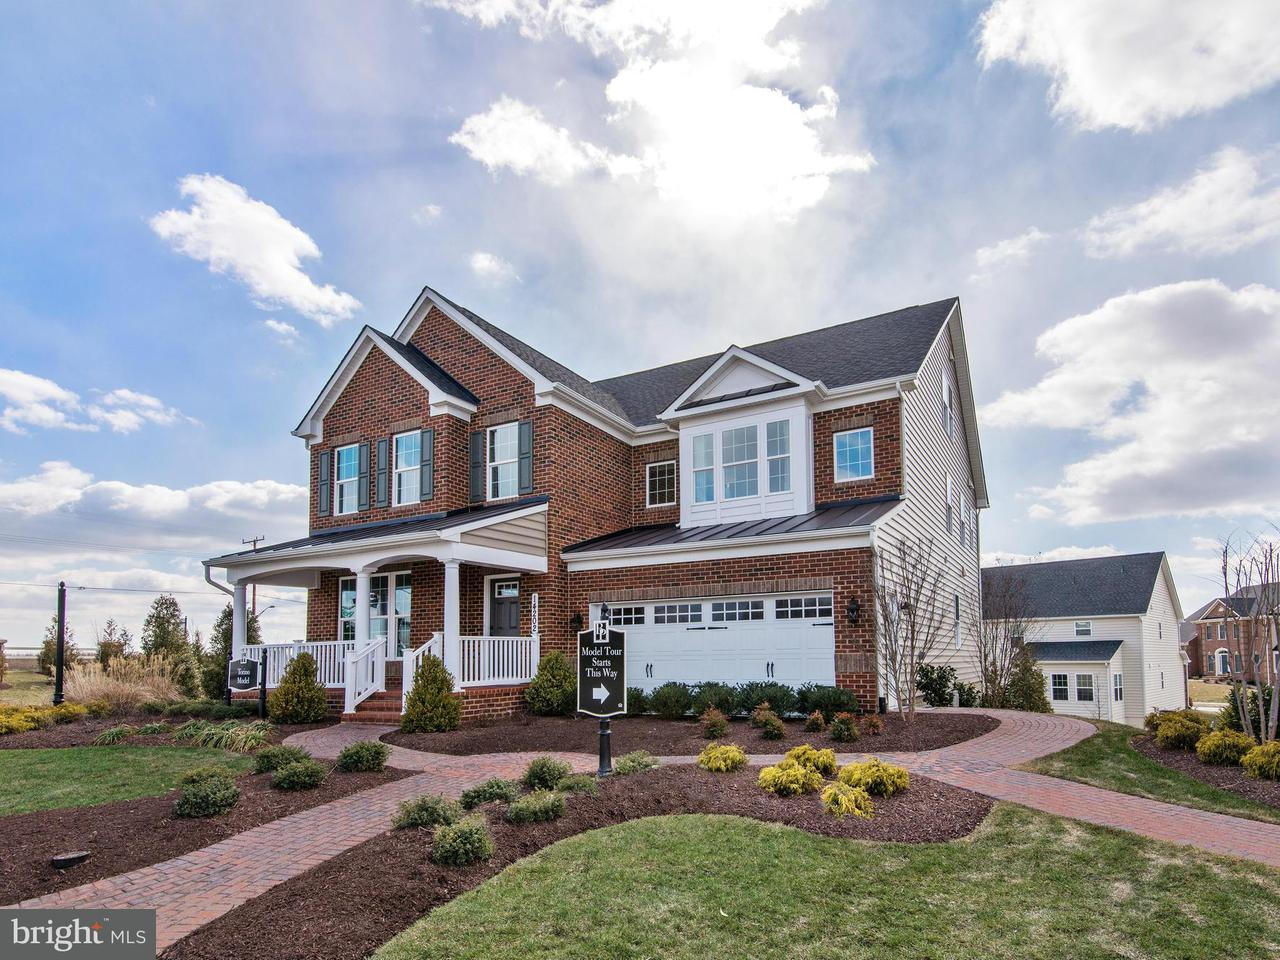 Single Family Home for Sale at 13407 REDSPIRE Drive 13407 REDSPIRE Drive Silver Spring, Maryland 20906 United States